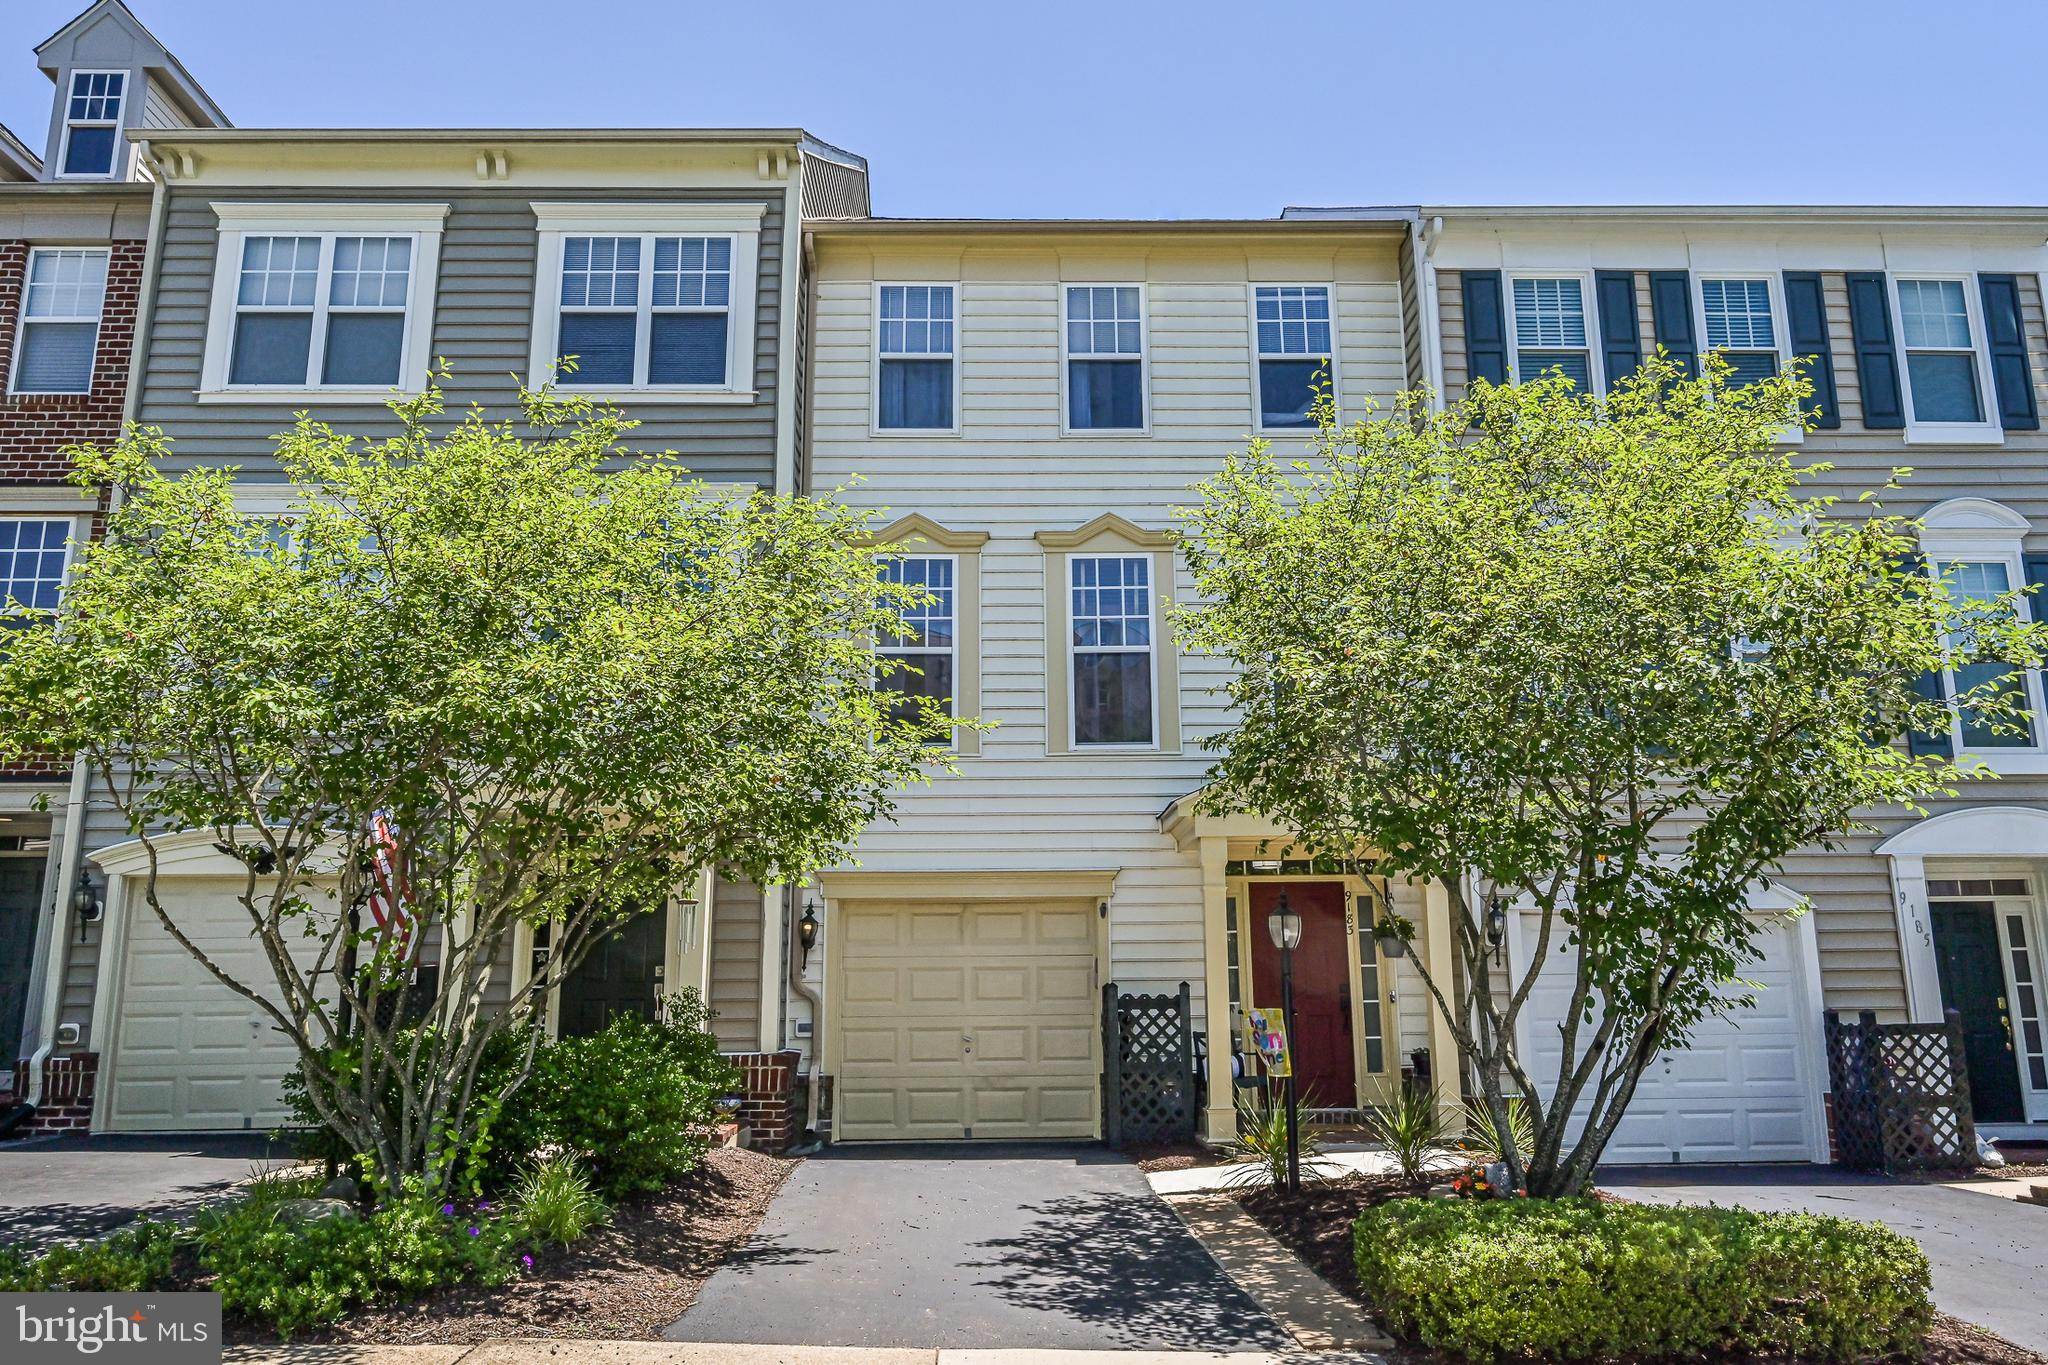 This well-cared for townhome shows like a dream and is move-in ready. The home boasts many upgrades